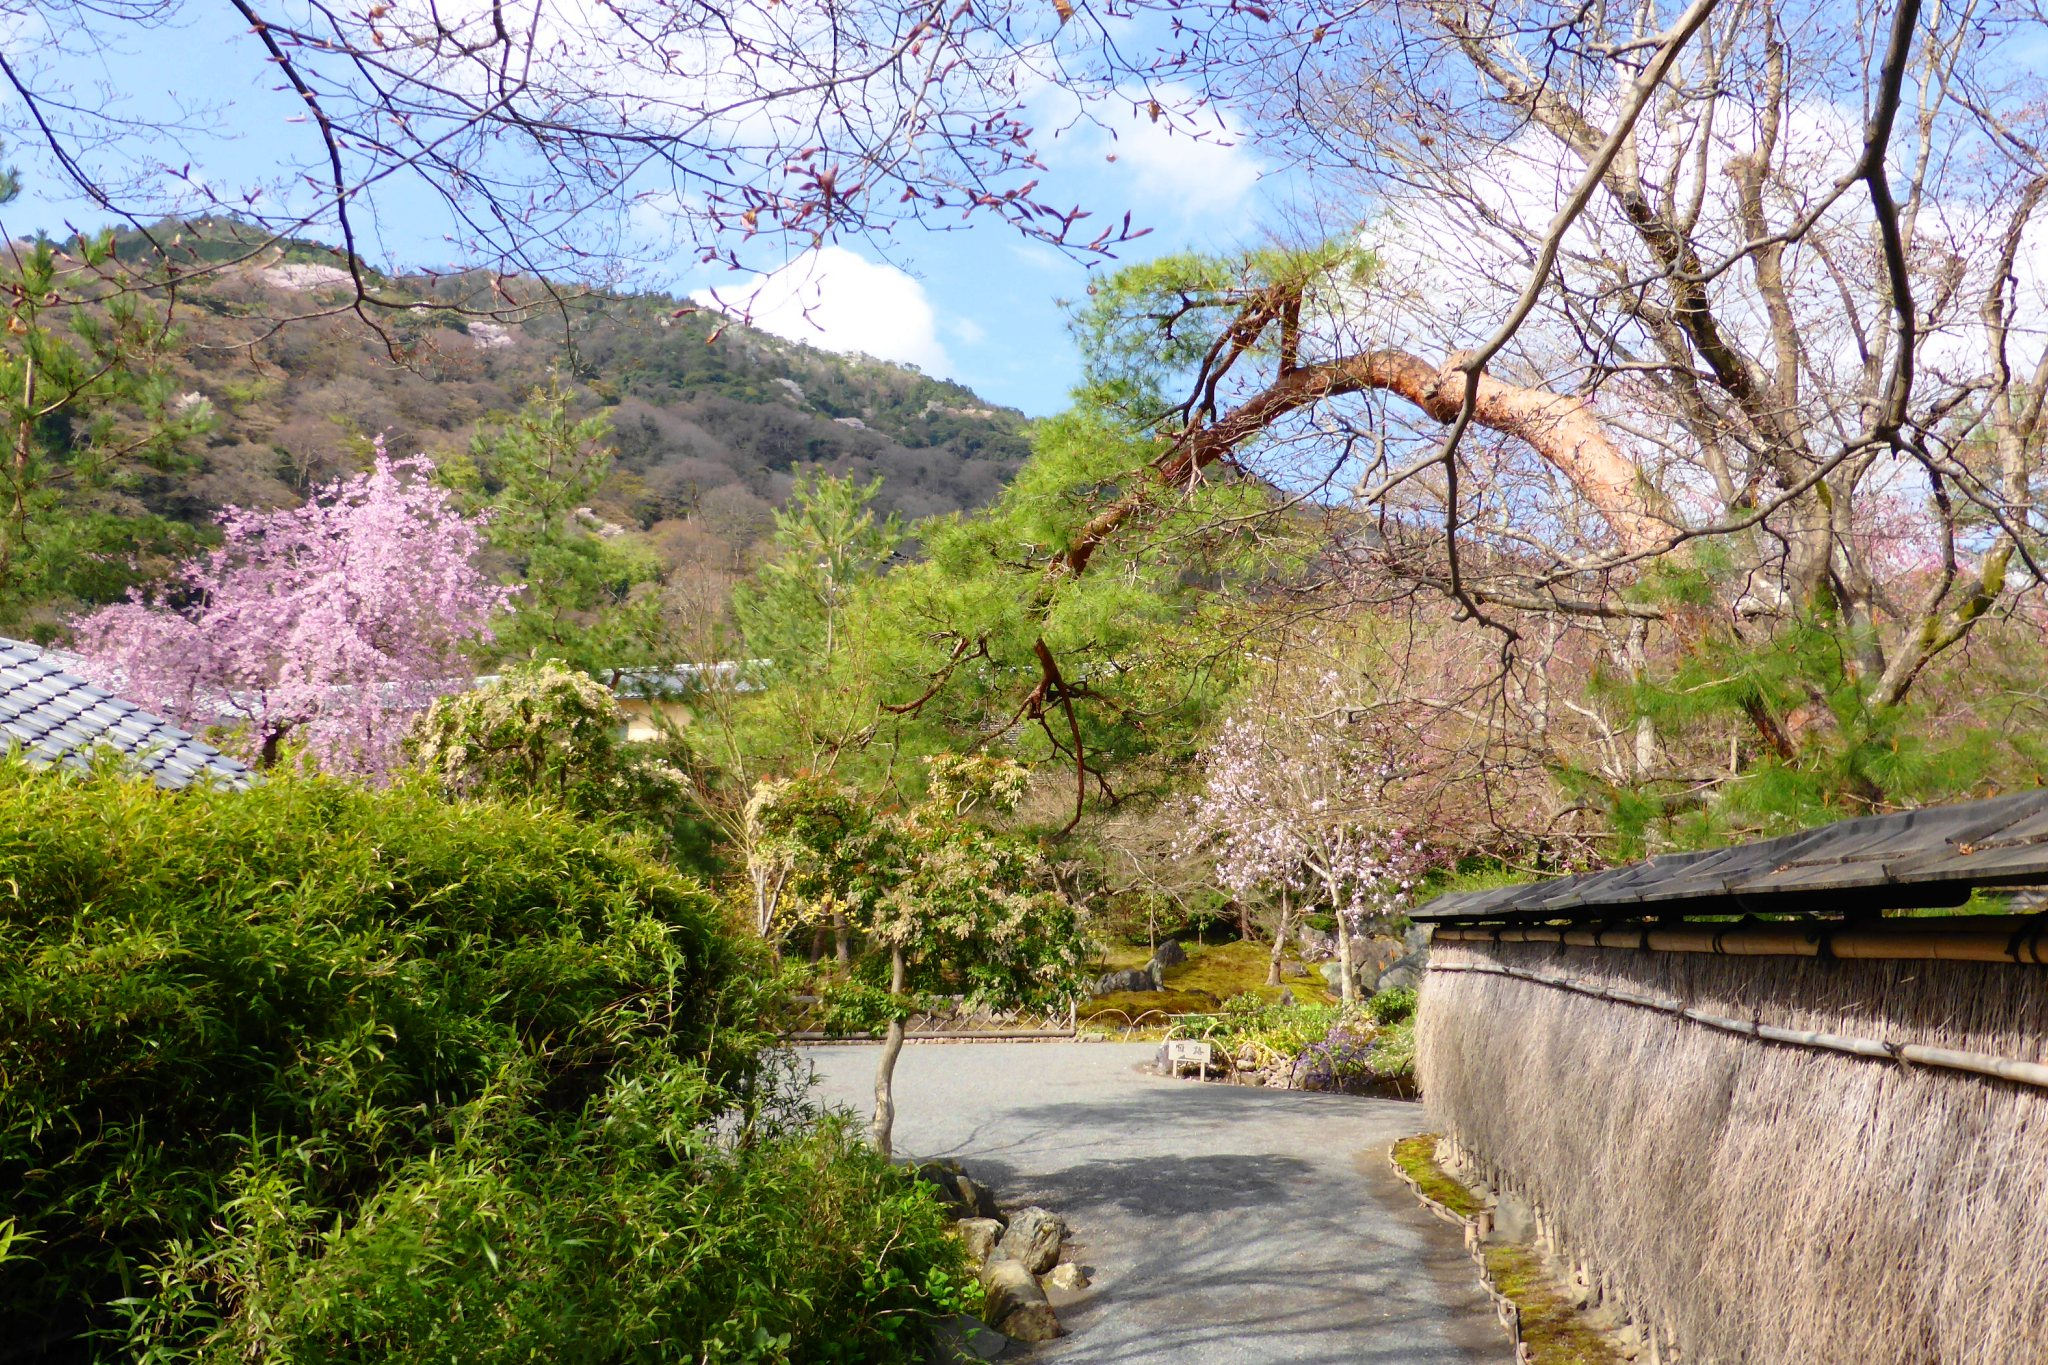 Hogon-in, Shishiku-no-niwa (Garden)